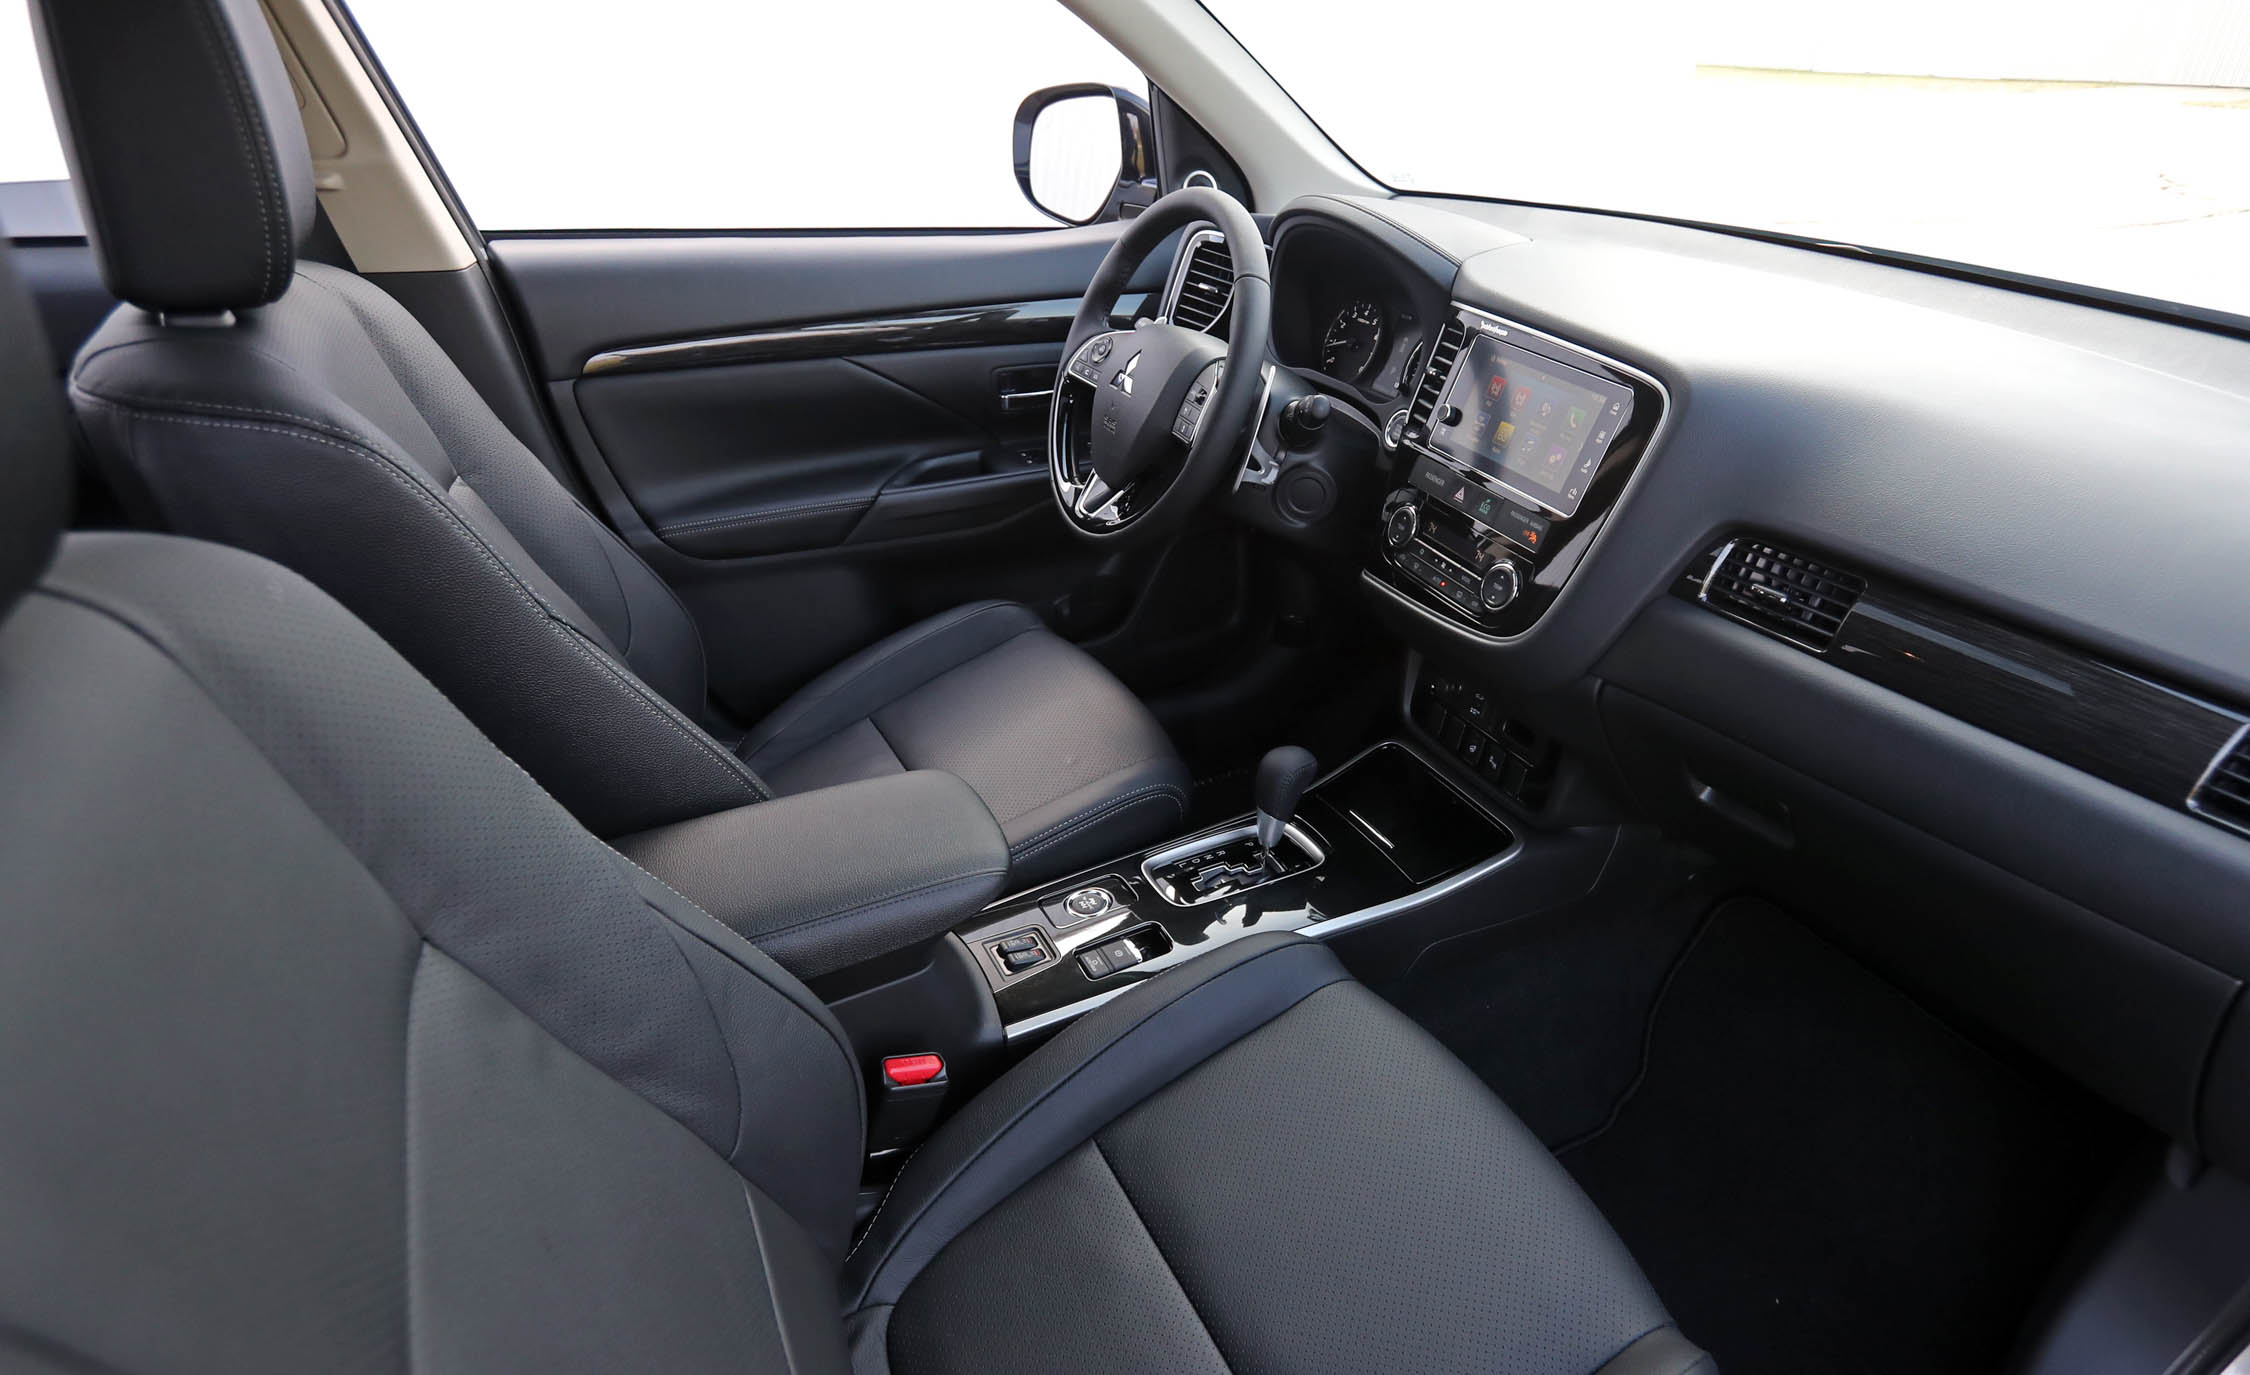 2017 Mitsubishi Outlander Gt Interior Dashboard (Photo 15 of 34)